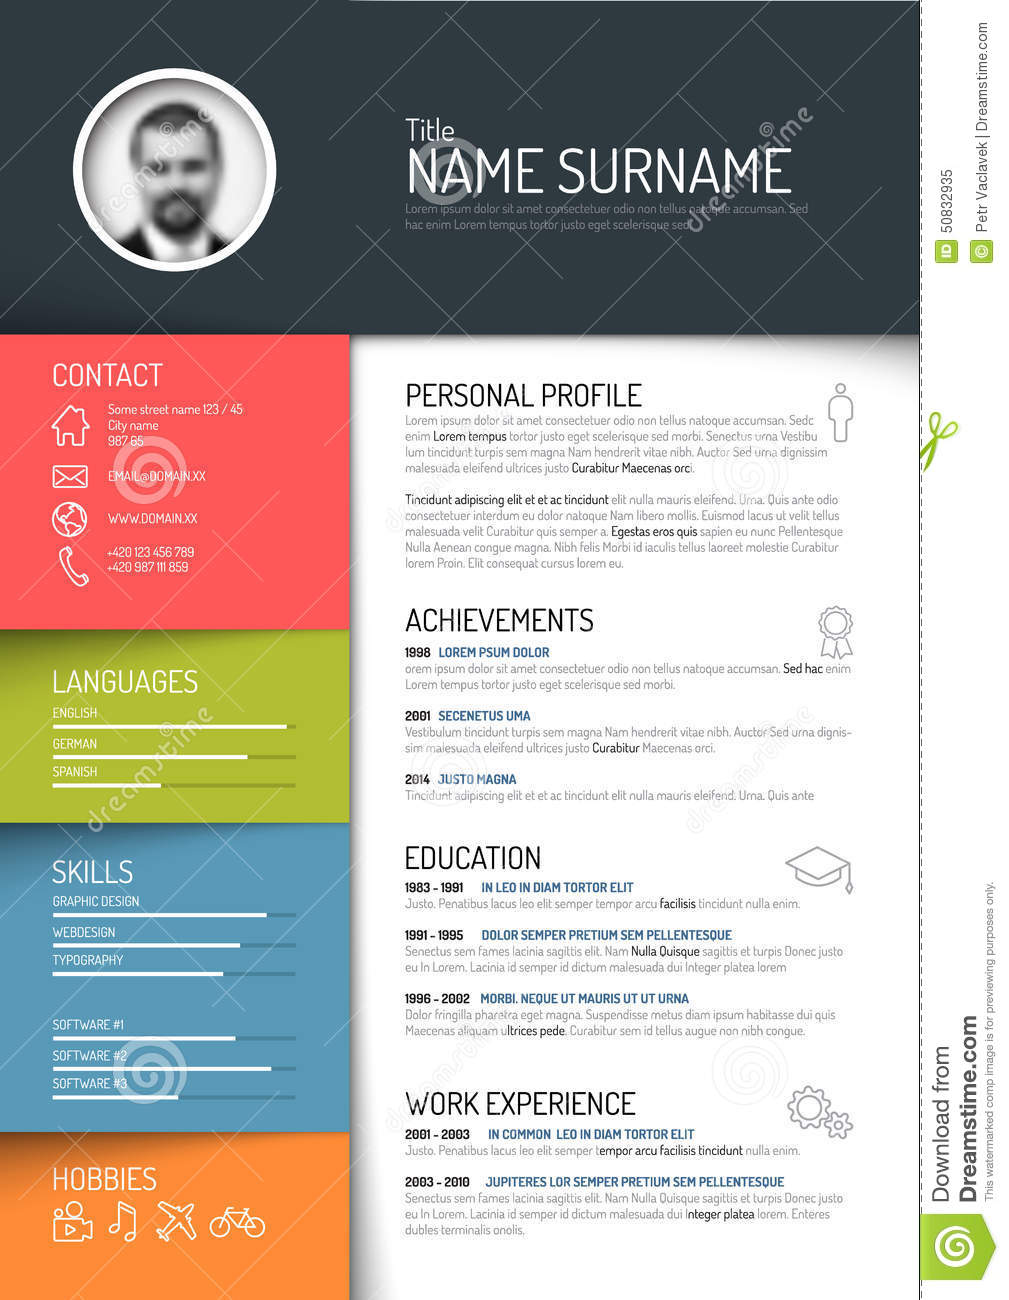 Cv Resume Template Stock Illustration Image 50832935